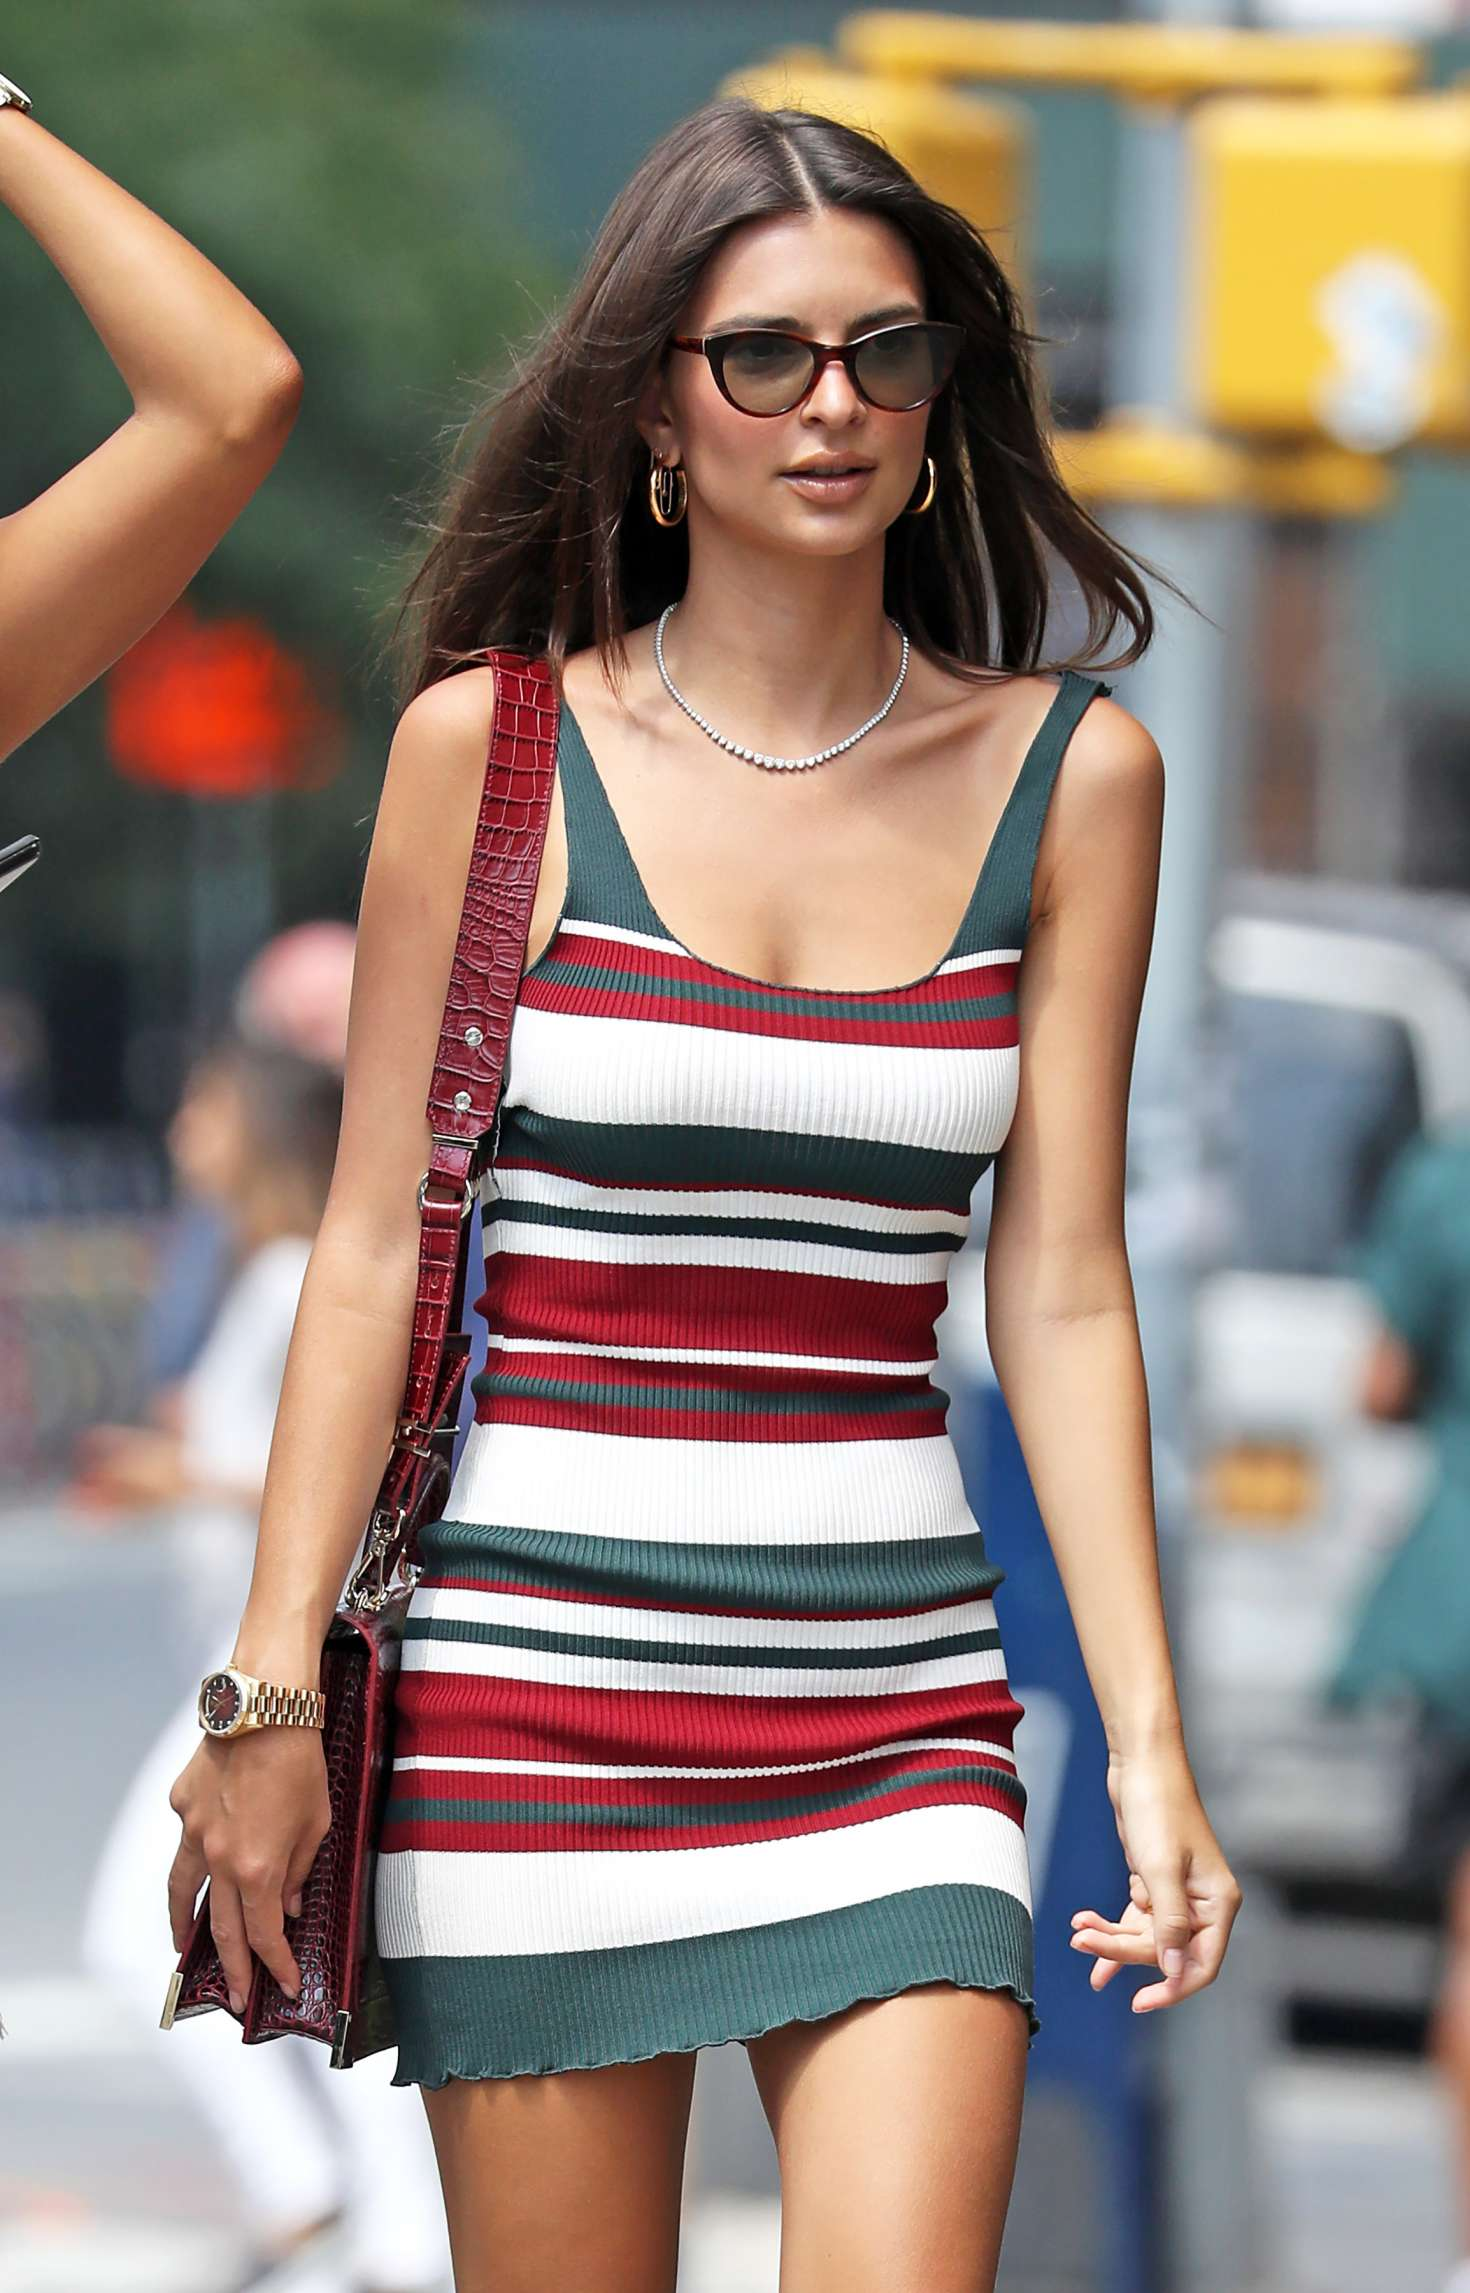 Emily Ratajkowski in Mini Dress – Out in New York City